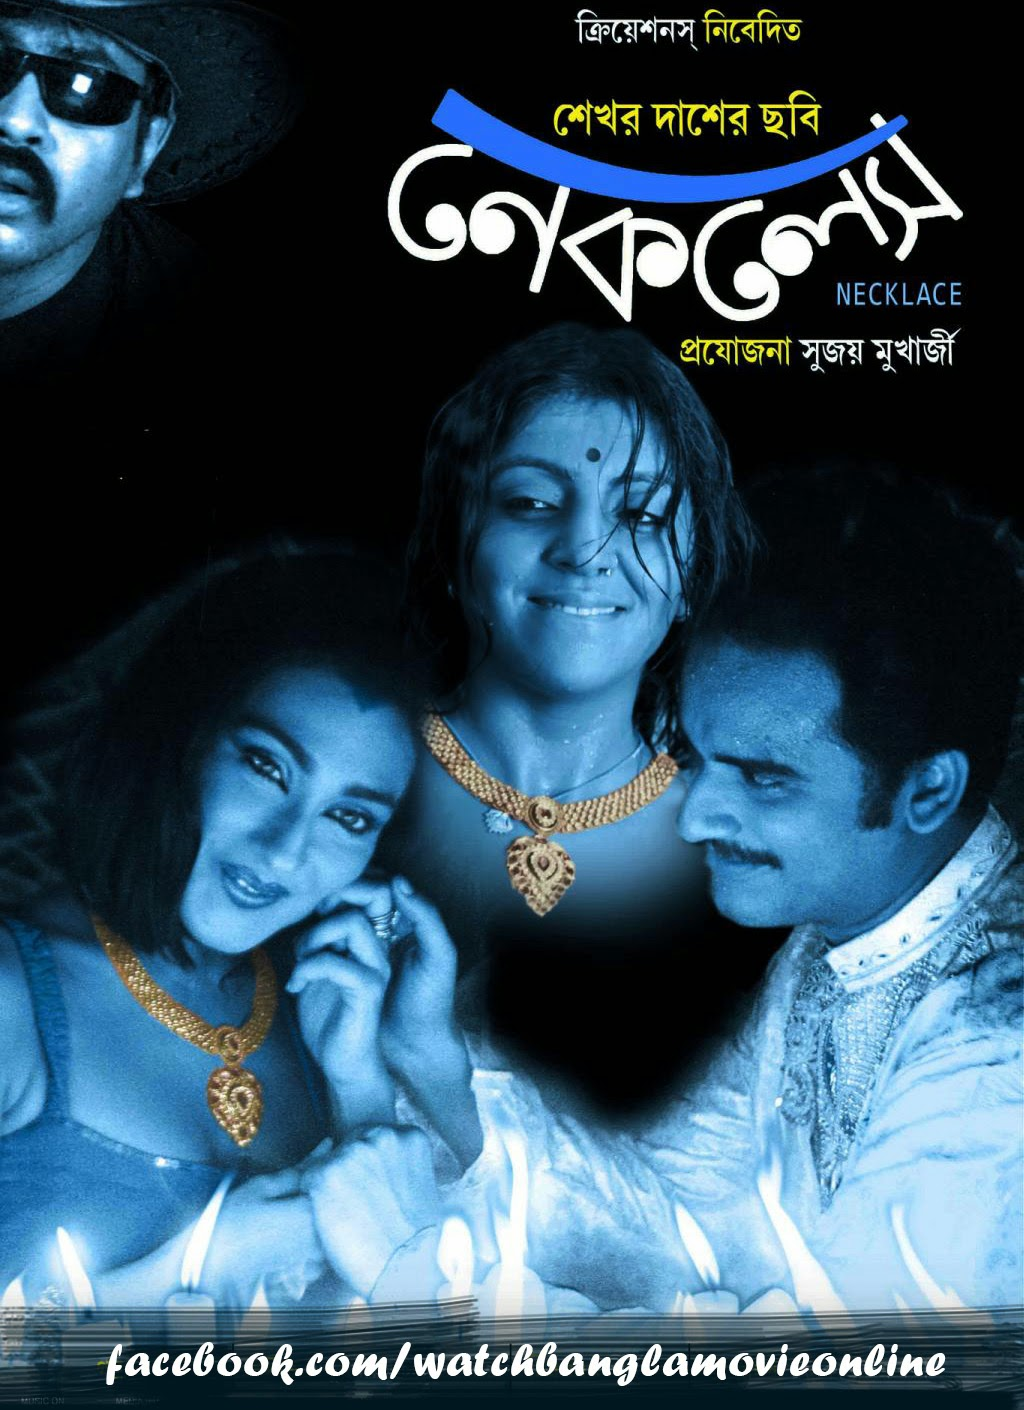 Sexy Movie In Bengali